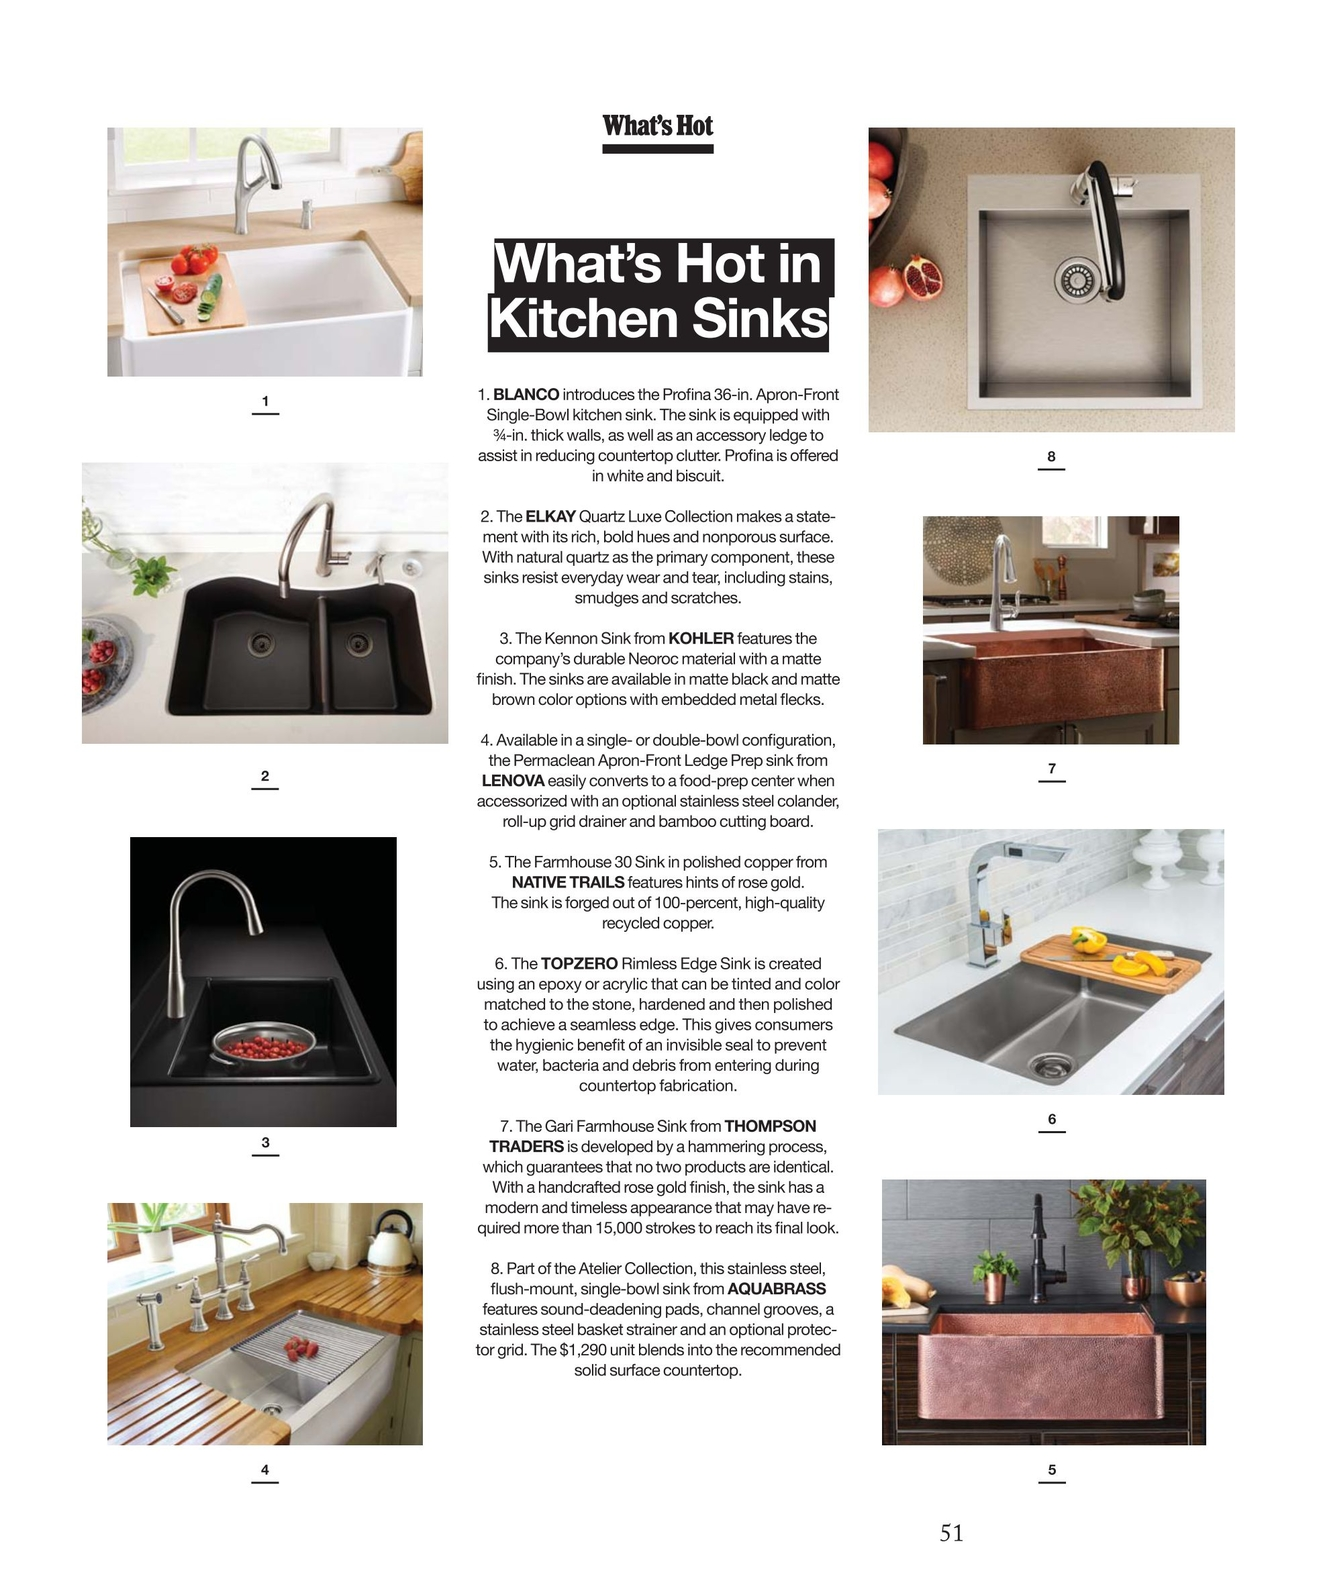 Kitchen & Bath Business - February/March 2017 [50 - 51]